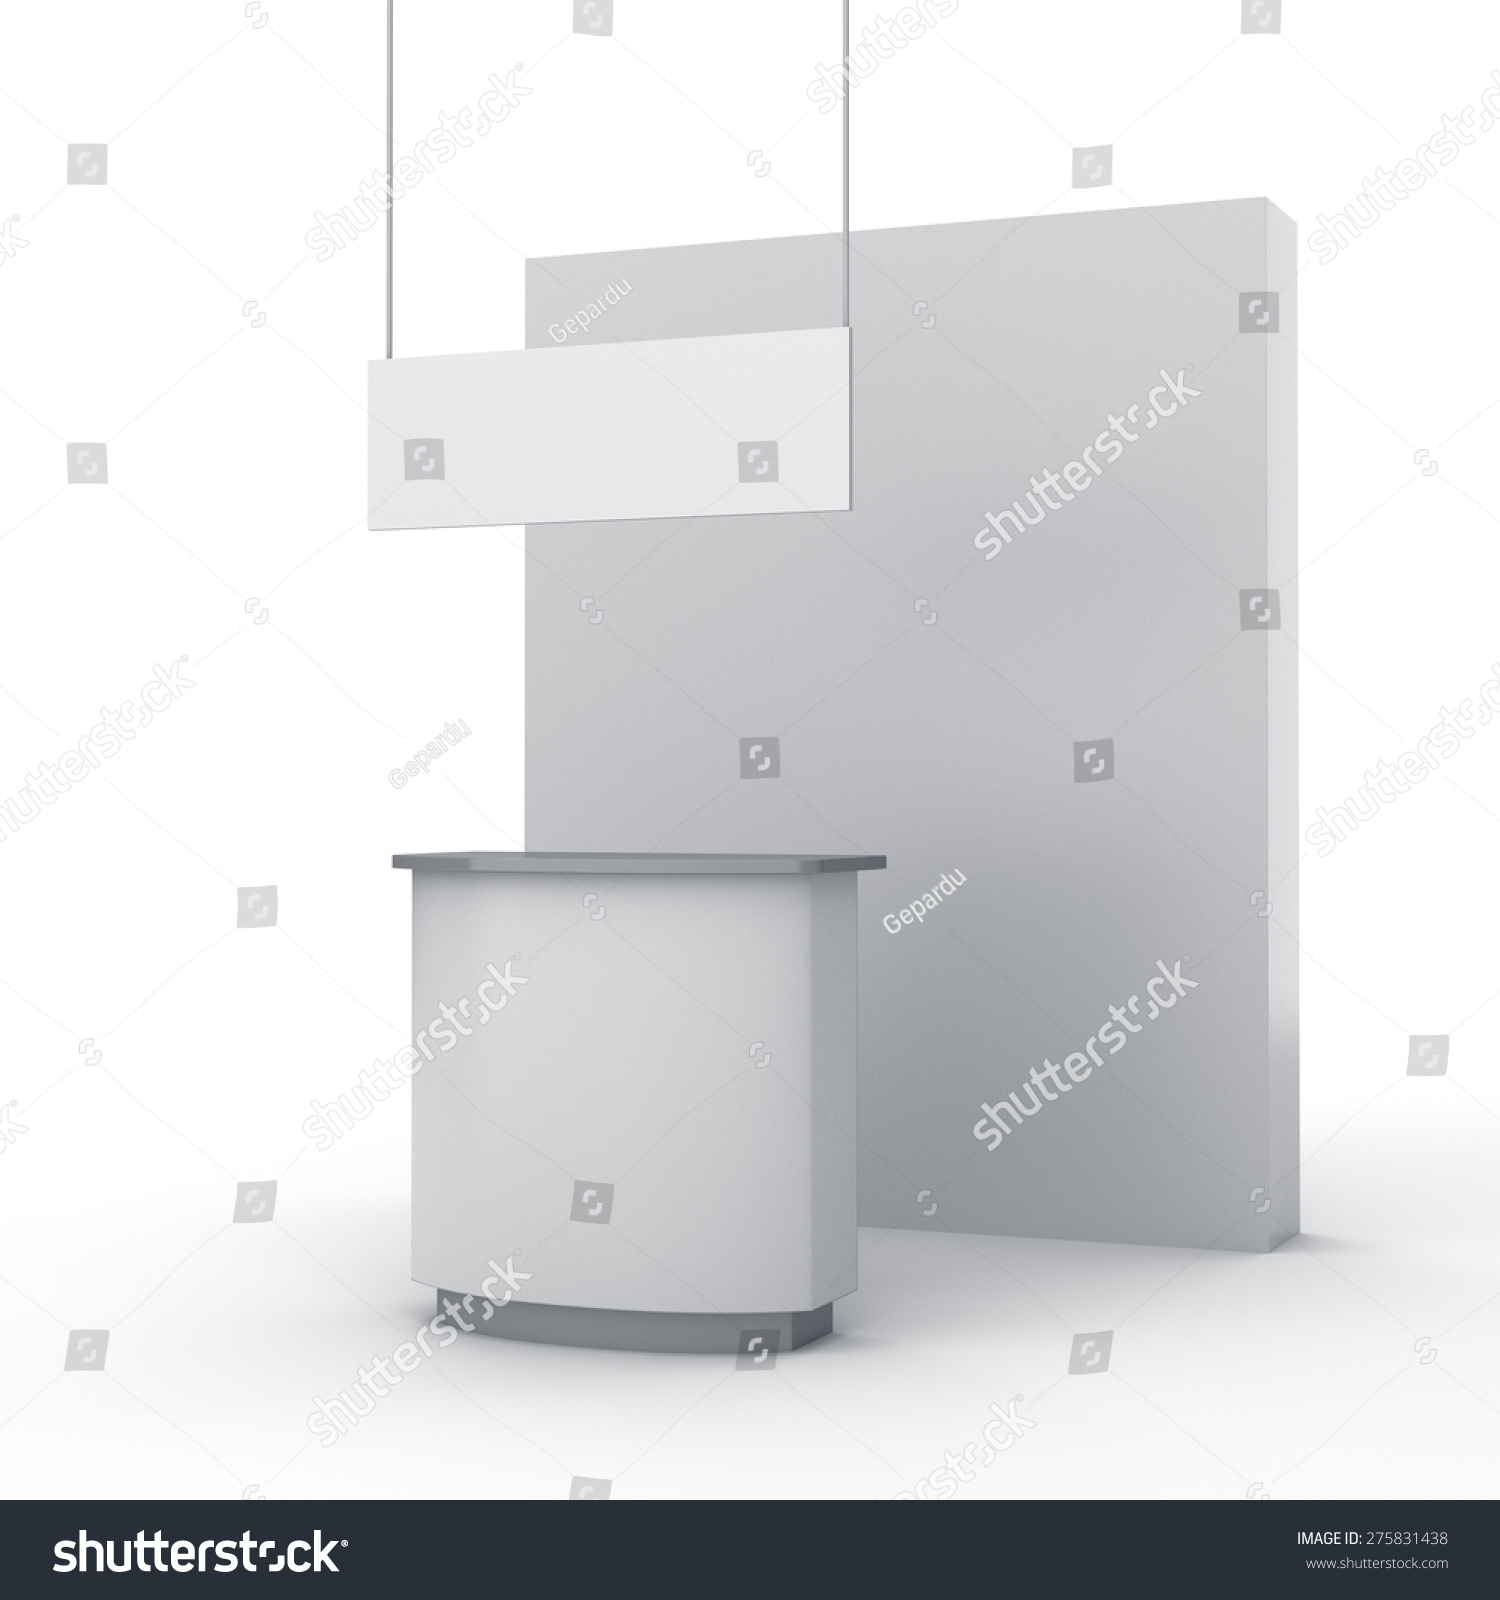 Simple Exhibition Stall : Royalty free stock illustration of blank simple stall exhibition